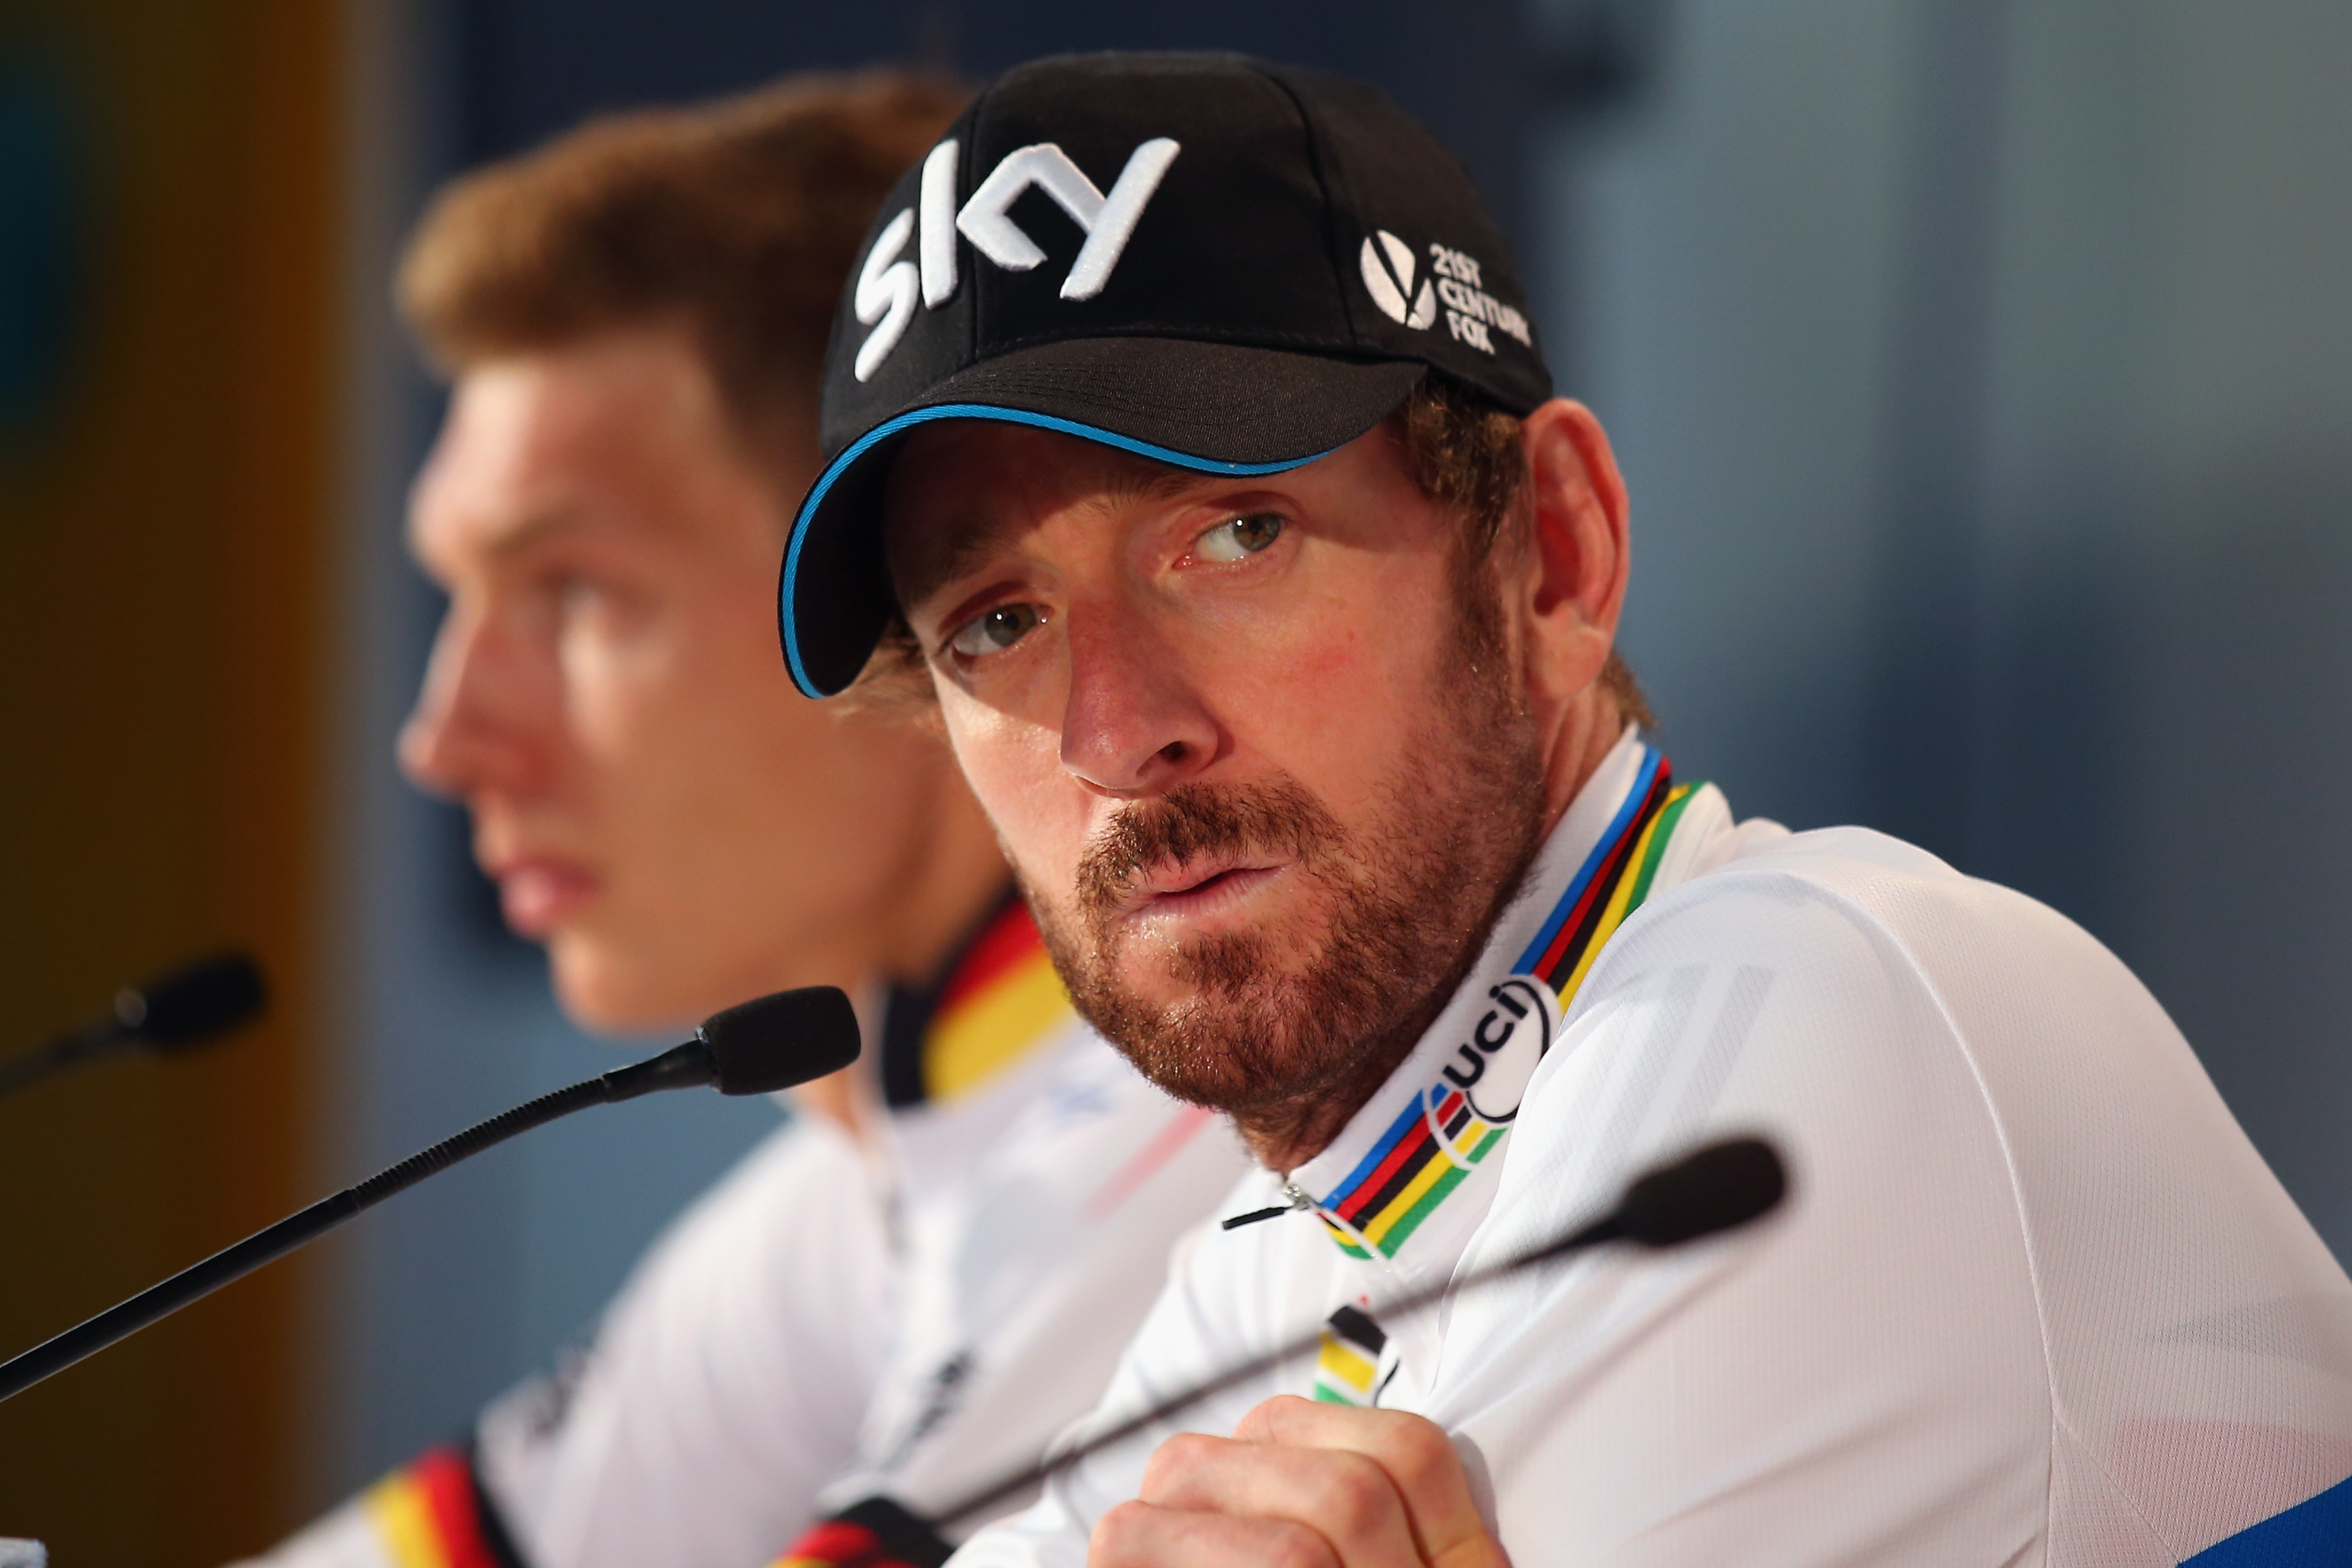 Bradley Wiggins and Team Sky being investigated by UK Anti-Doping Agency over delivery of 'medical package'